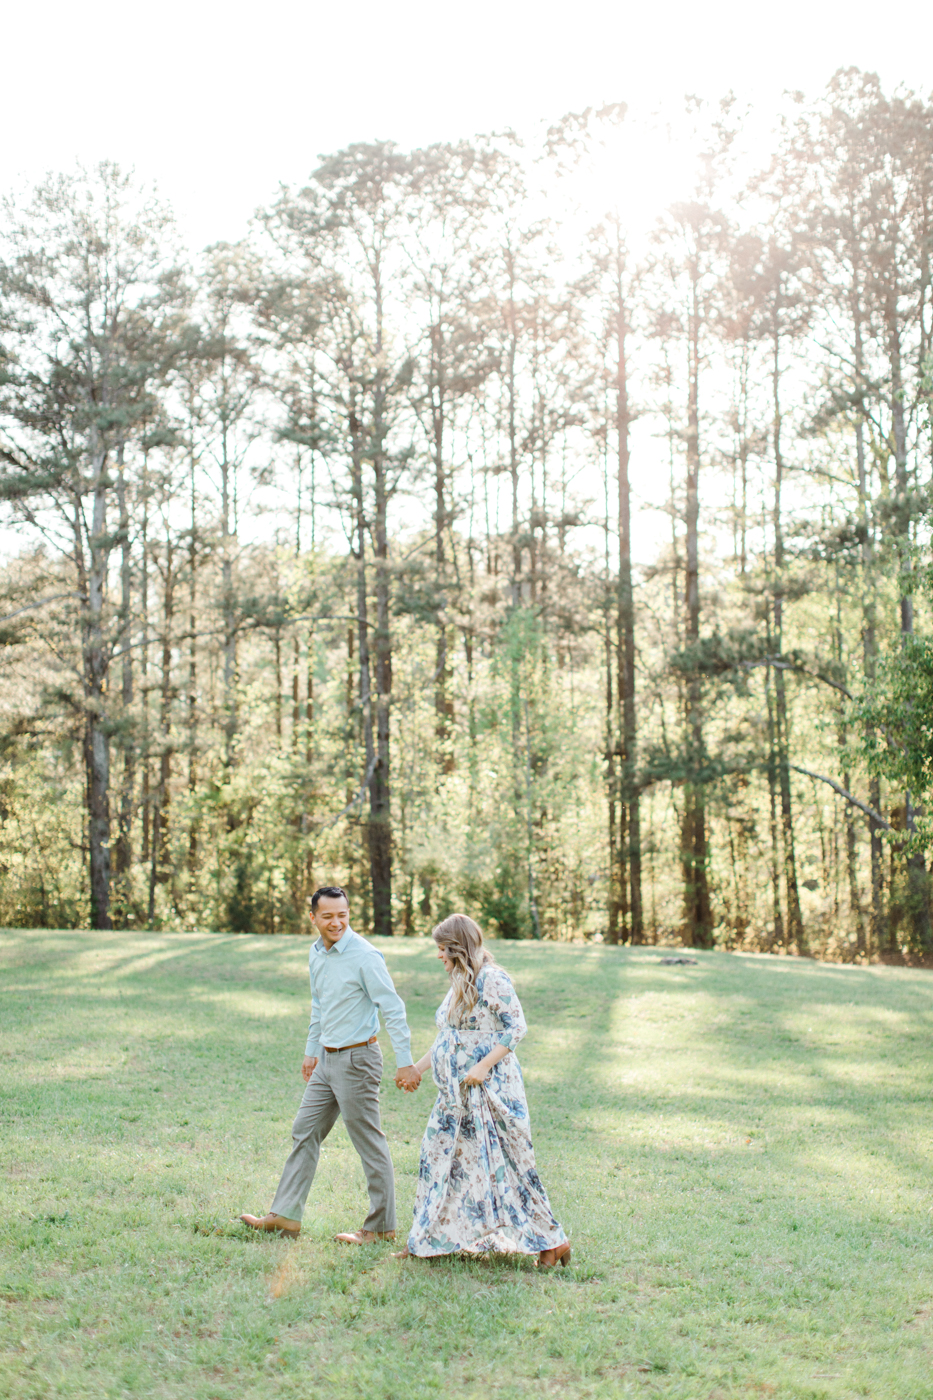 four corners photography atlanta engagement photographer georgia photographer fine art film photographer atlanta natural light photographer newborn photographer family photographer fine art maternity photographer-2.jpg